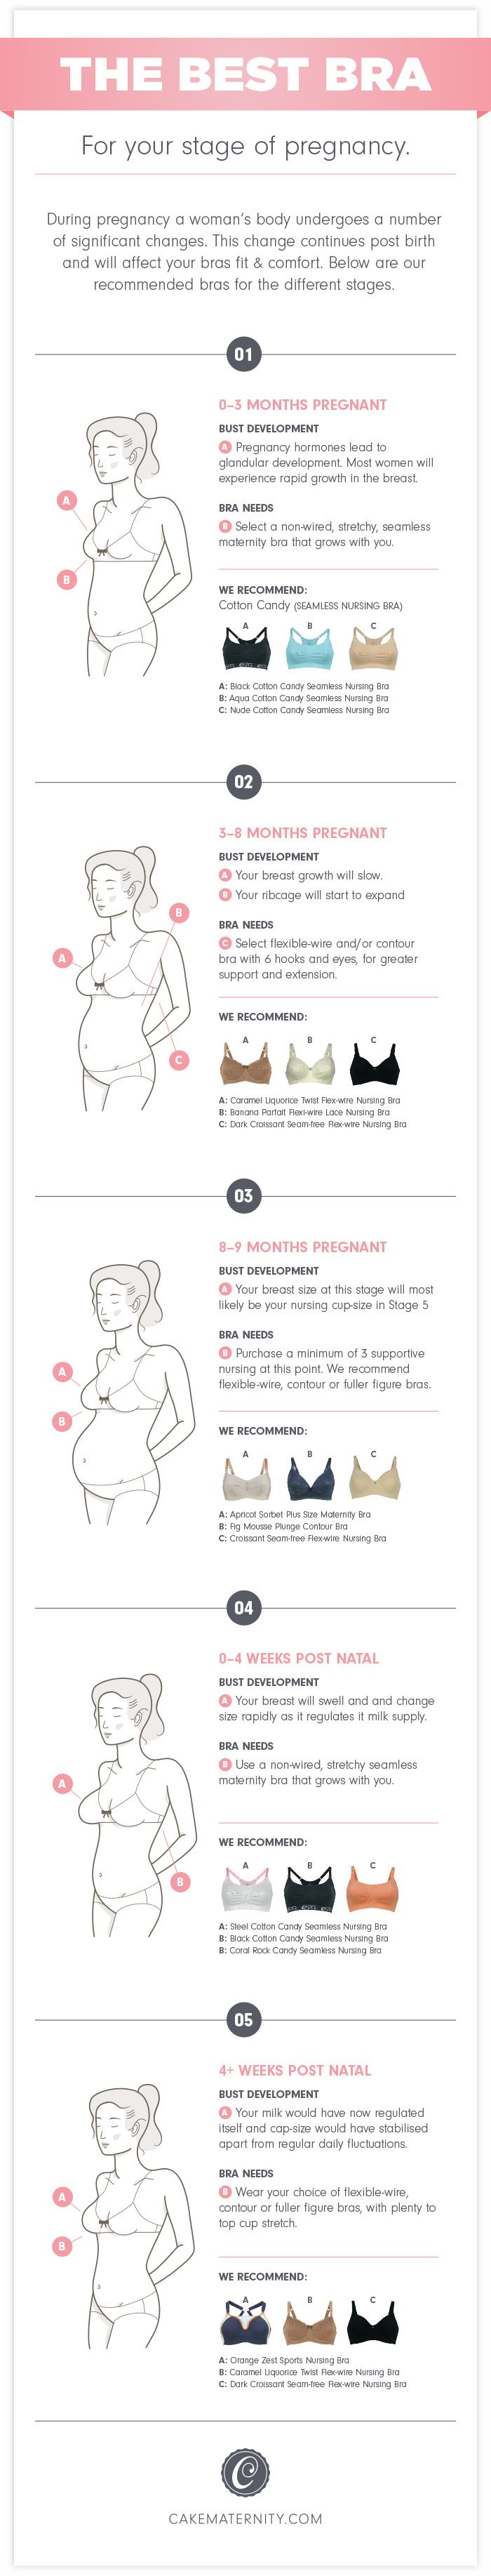 The Best Bra for Your Stage of Pregnancy Infographic